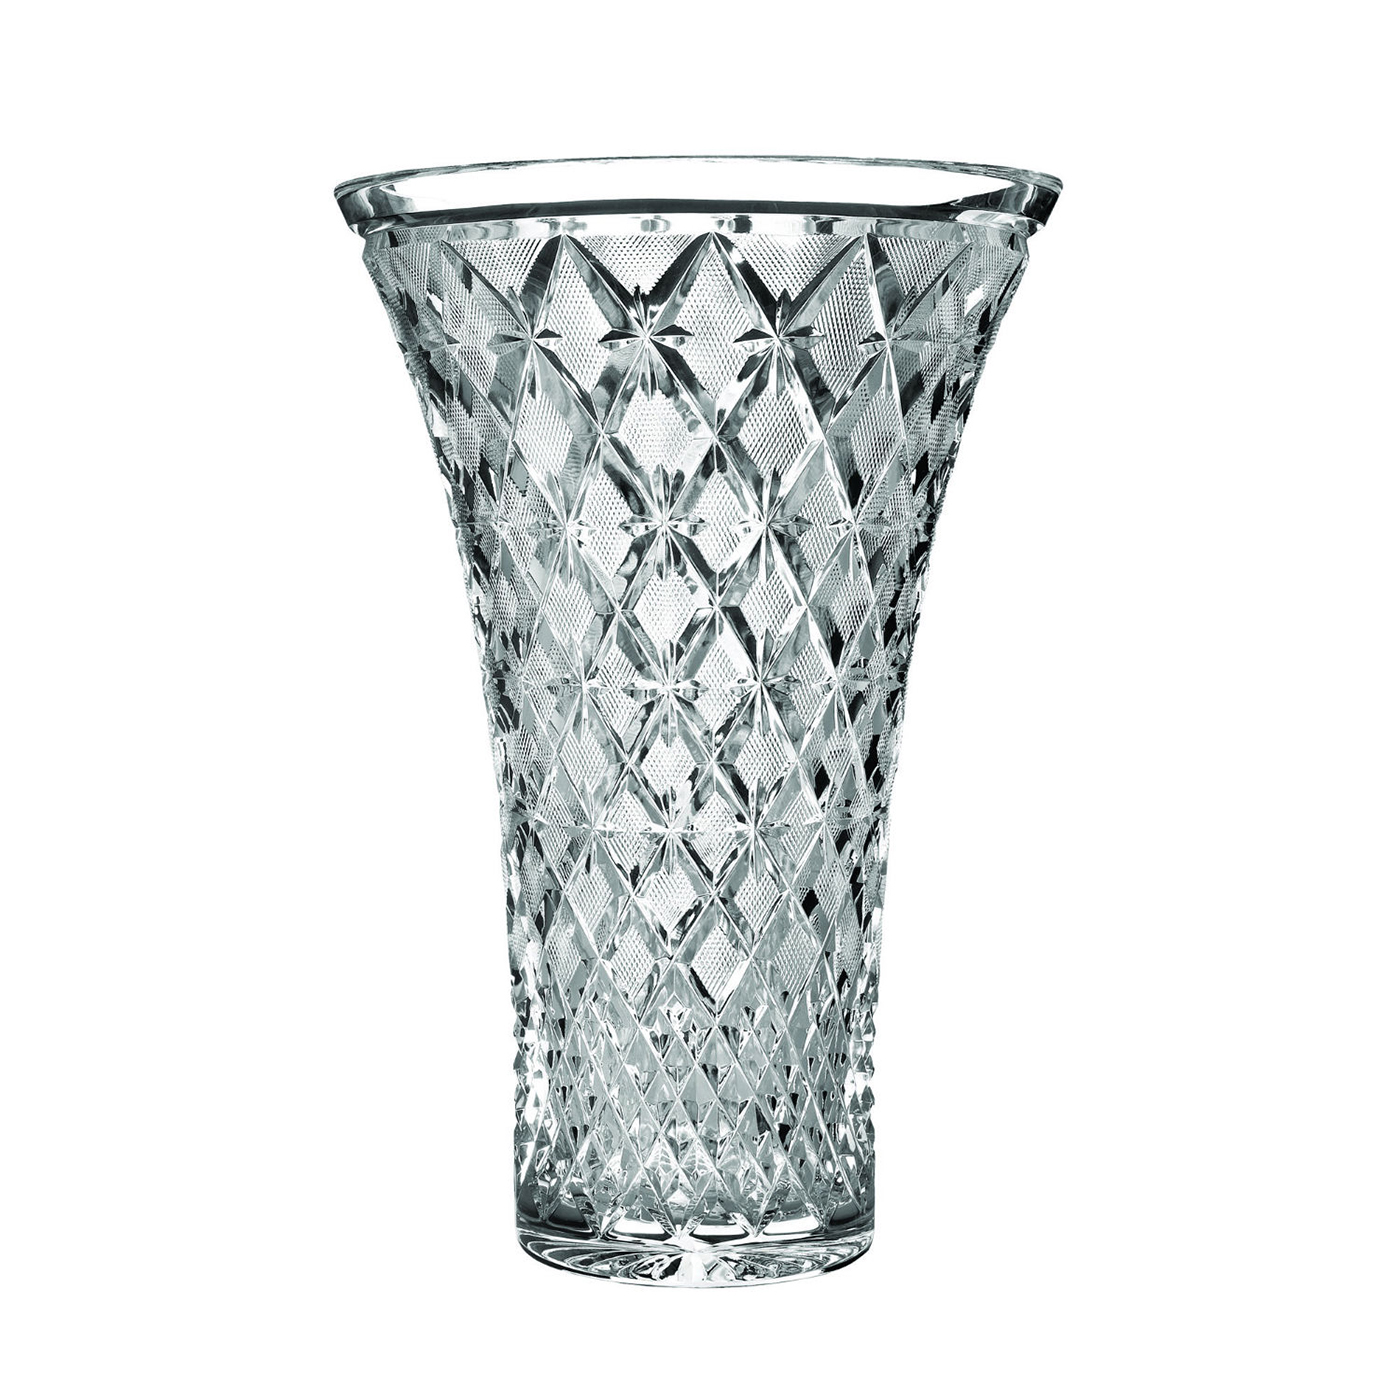 Waterford Lace 14 Quot Vase By Waterford